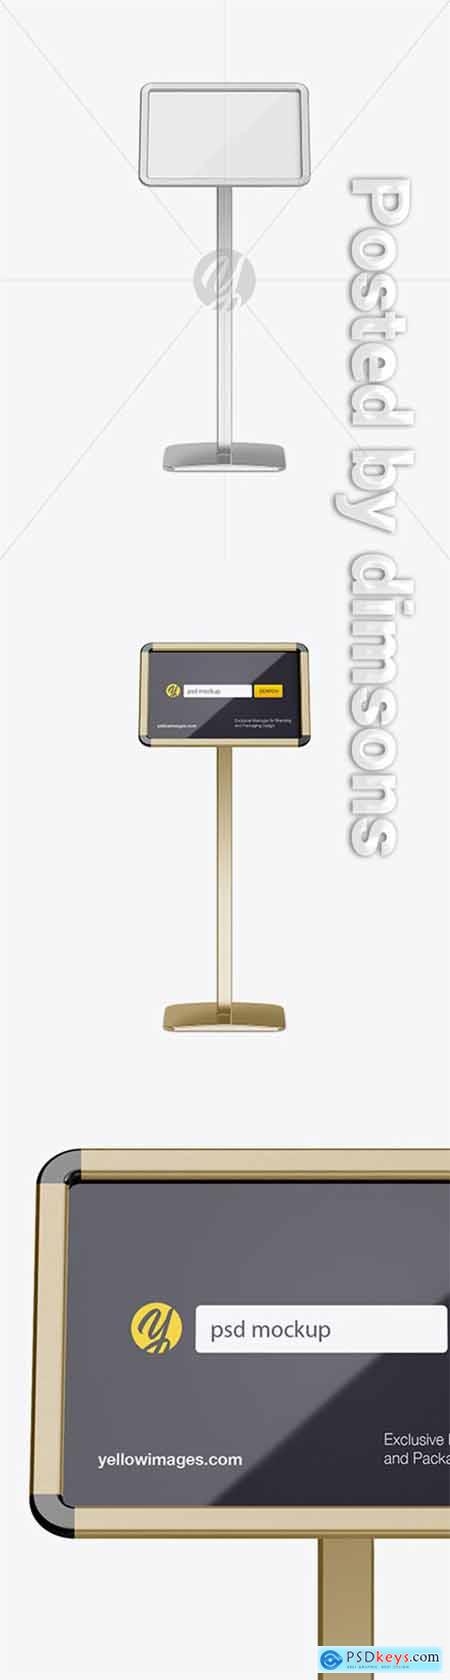 Metallic Frame Poster Stand Mockup - Front View 21149